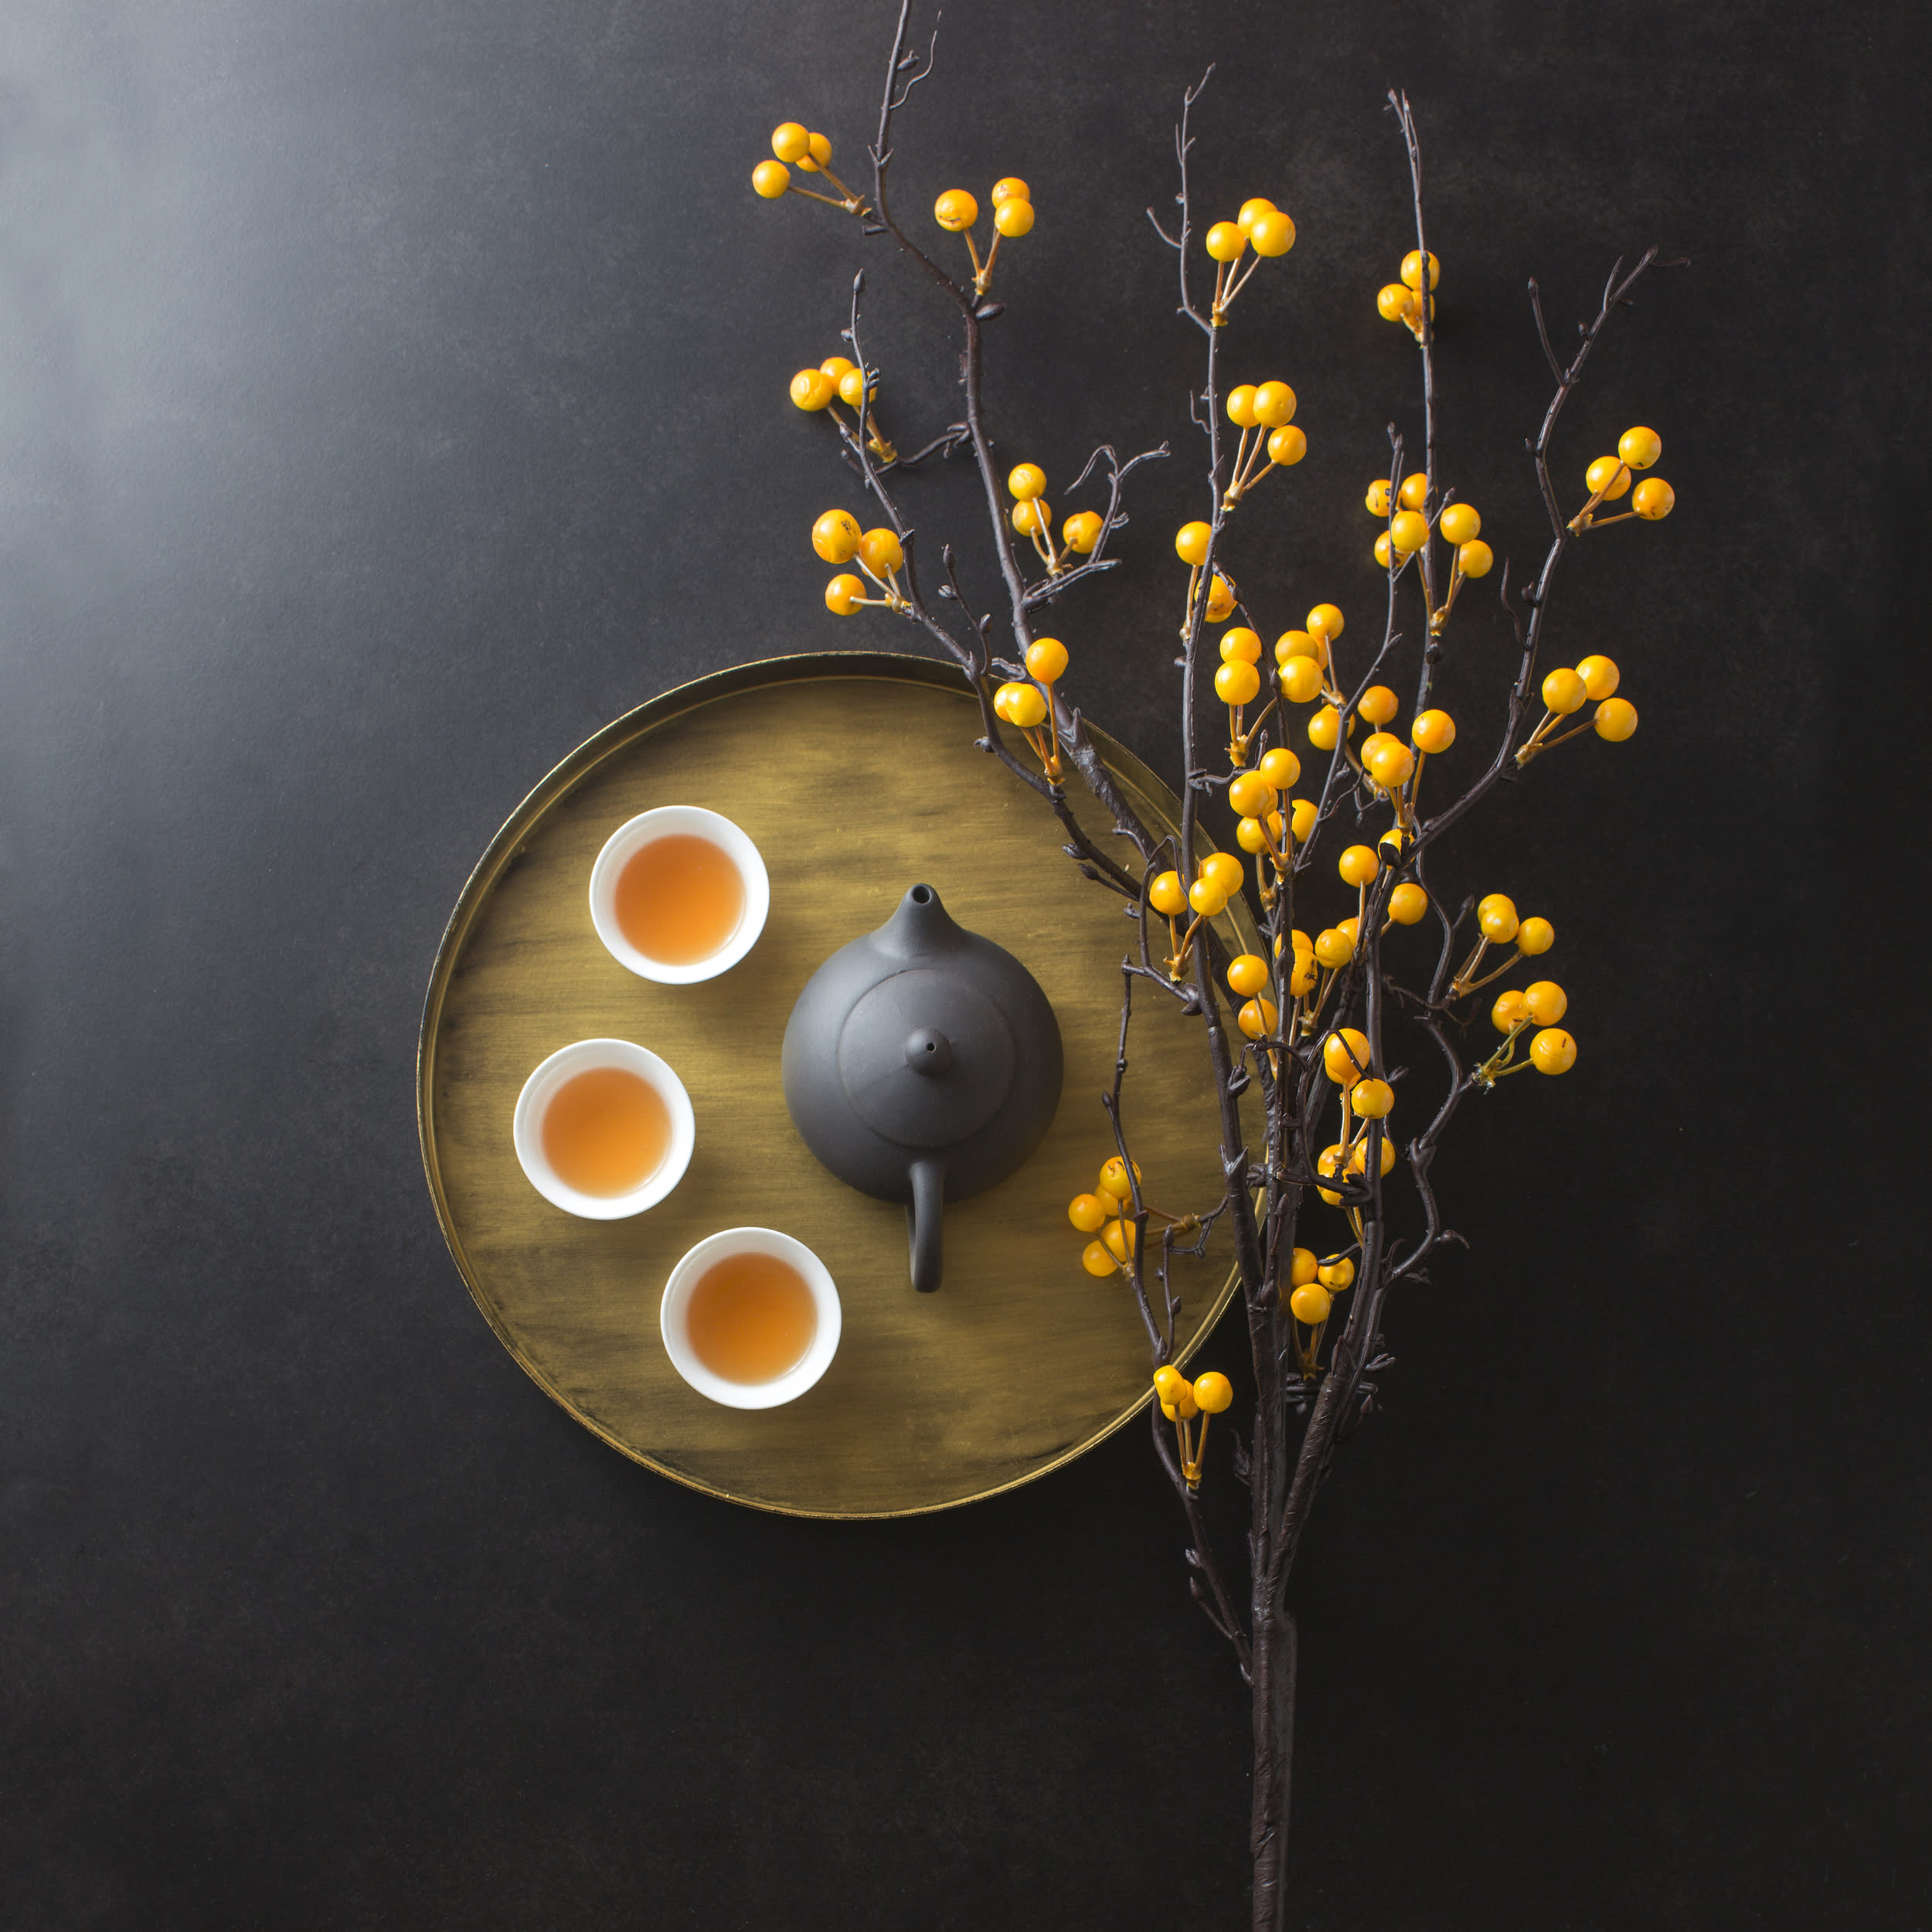 Chinese afternoon tea still life textured moody black background. hand holding tea cup.